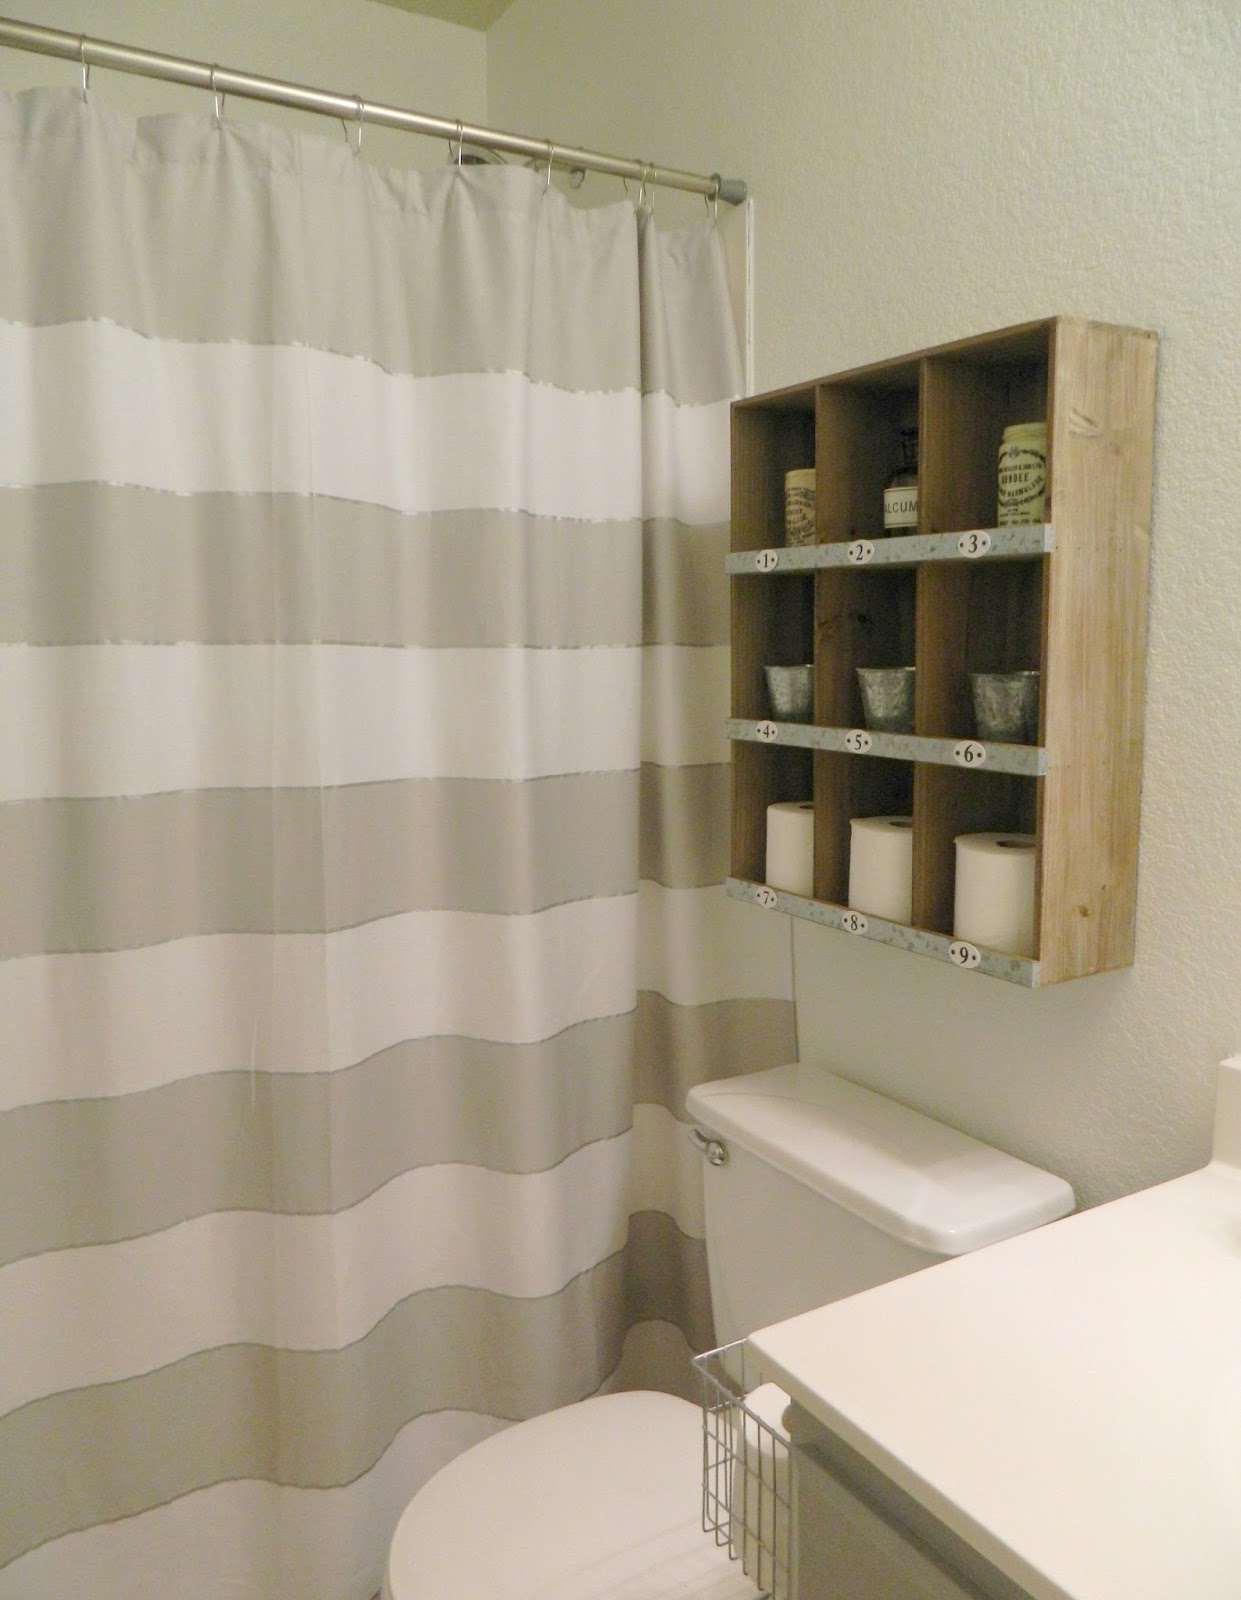 Fern Creek Cottage Our Home - Beige and gray shower curtain